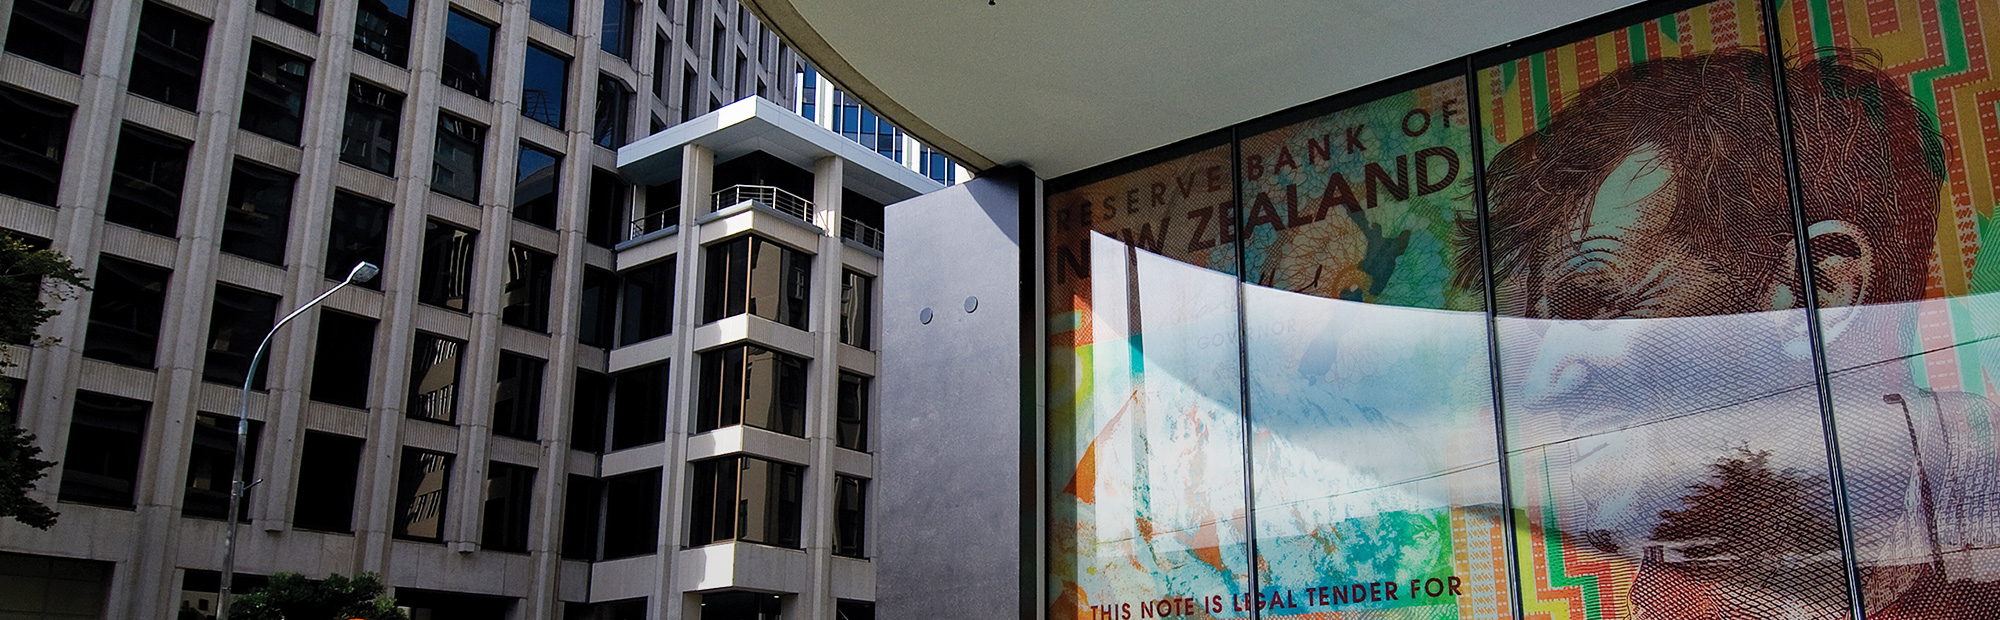 Image of the Reserve Bank of New Zealand.